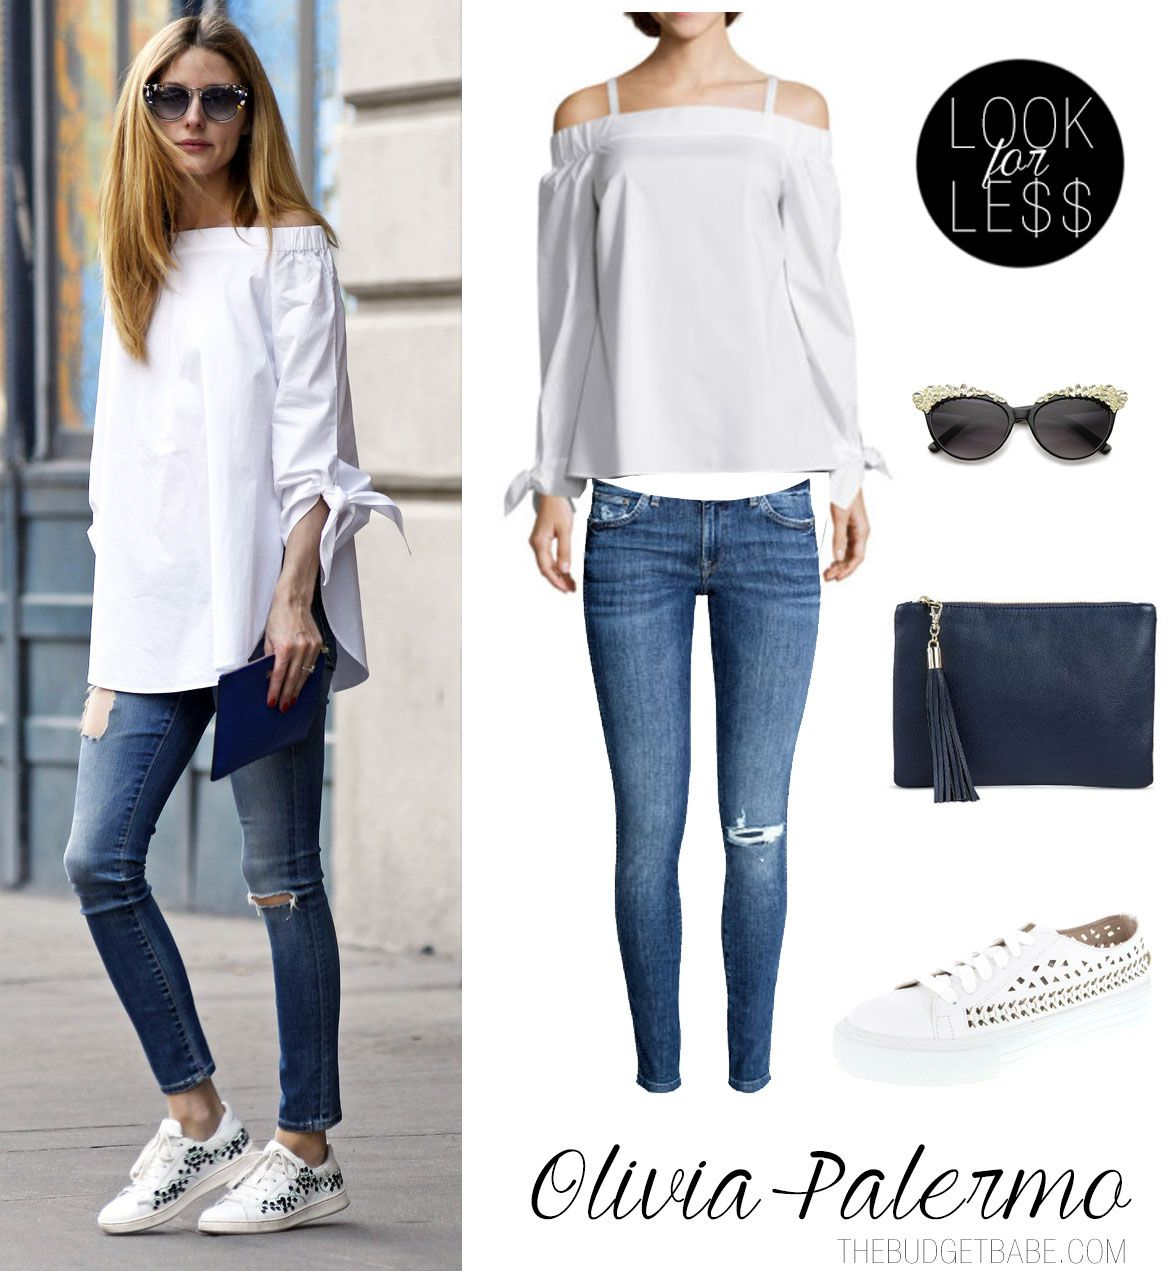 68b040ceb46e1 Olivia Palermo s Off-the-Shoulder Top and White Sneakers Look for ...